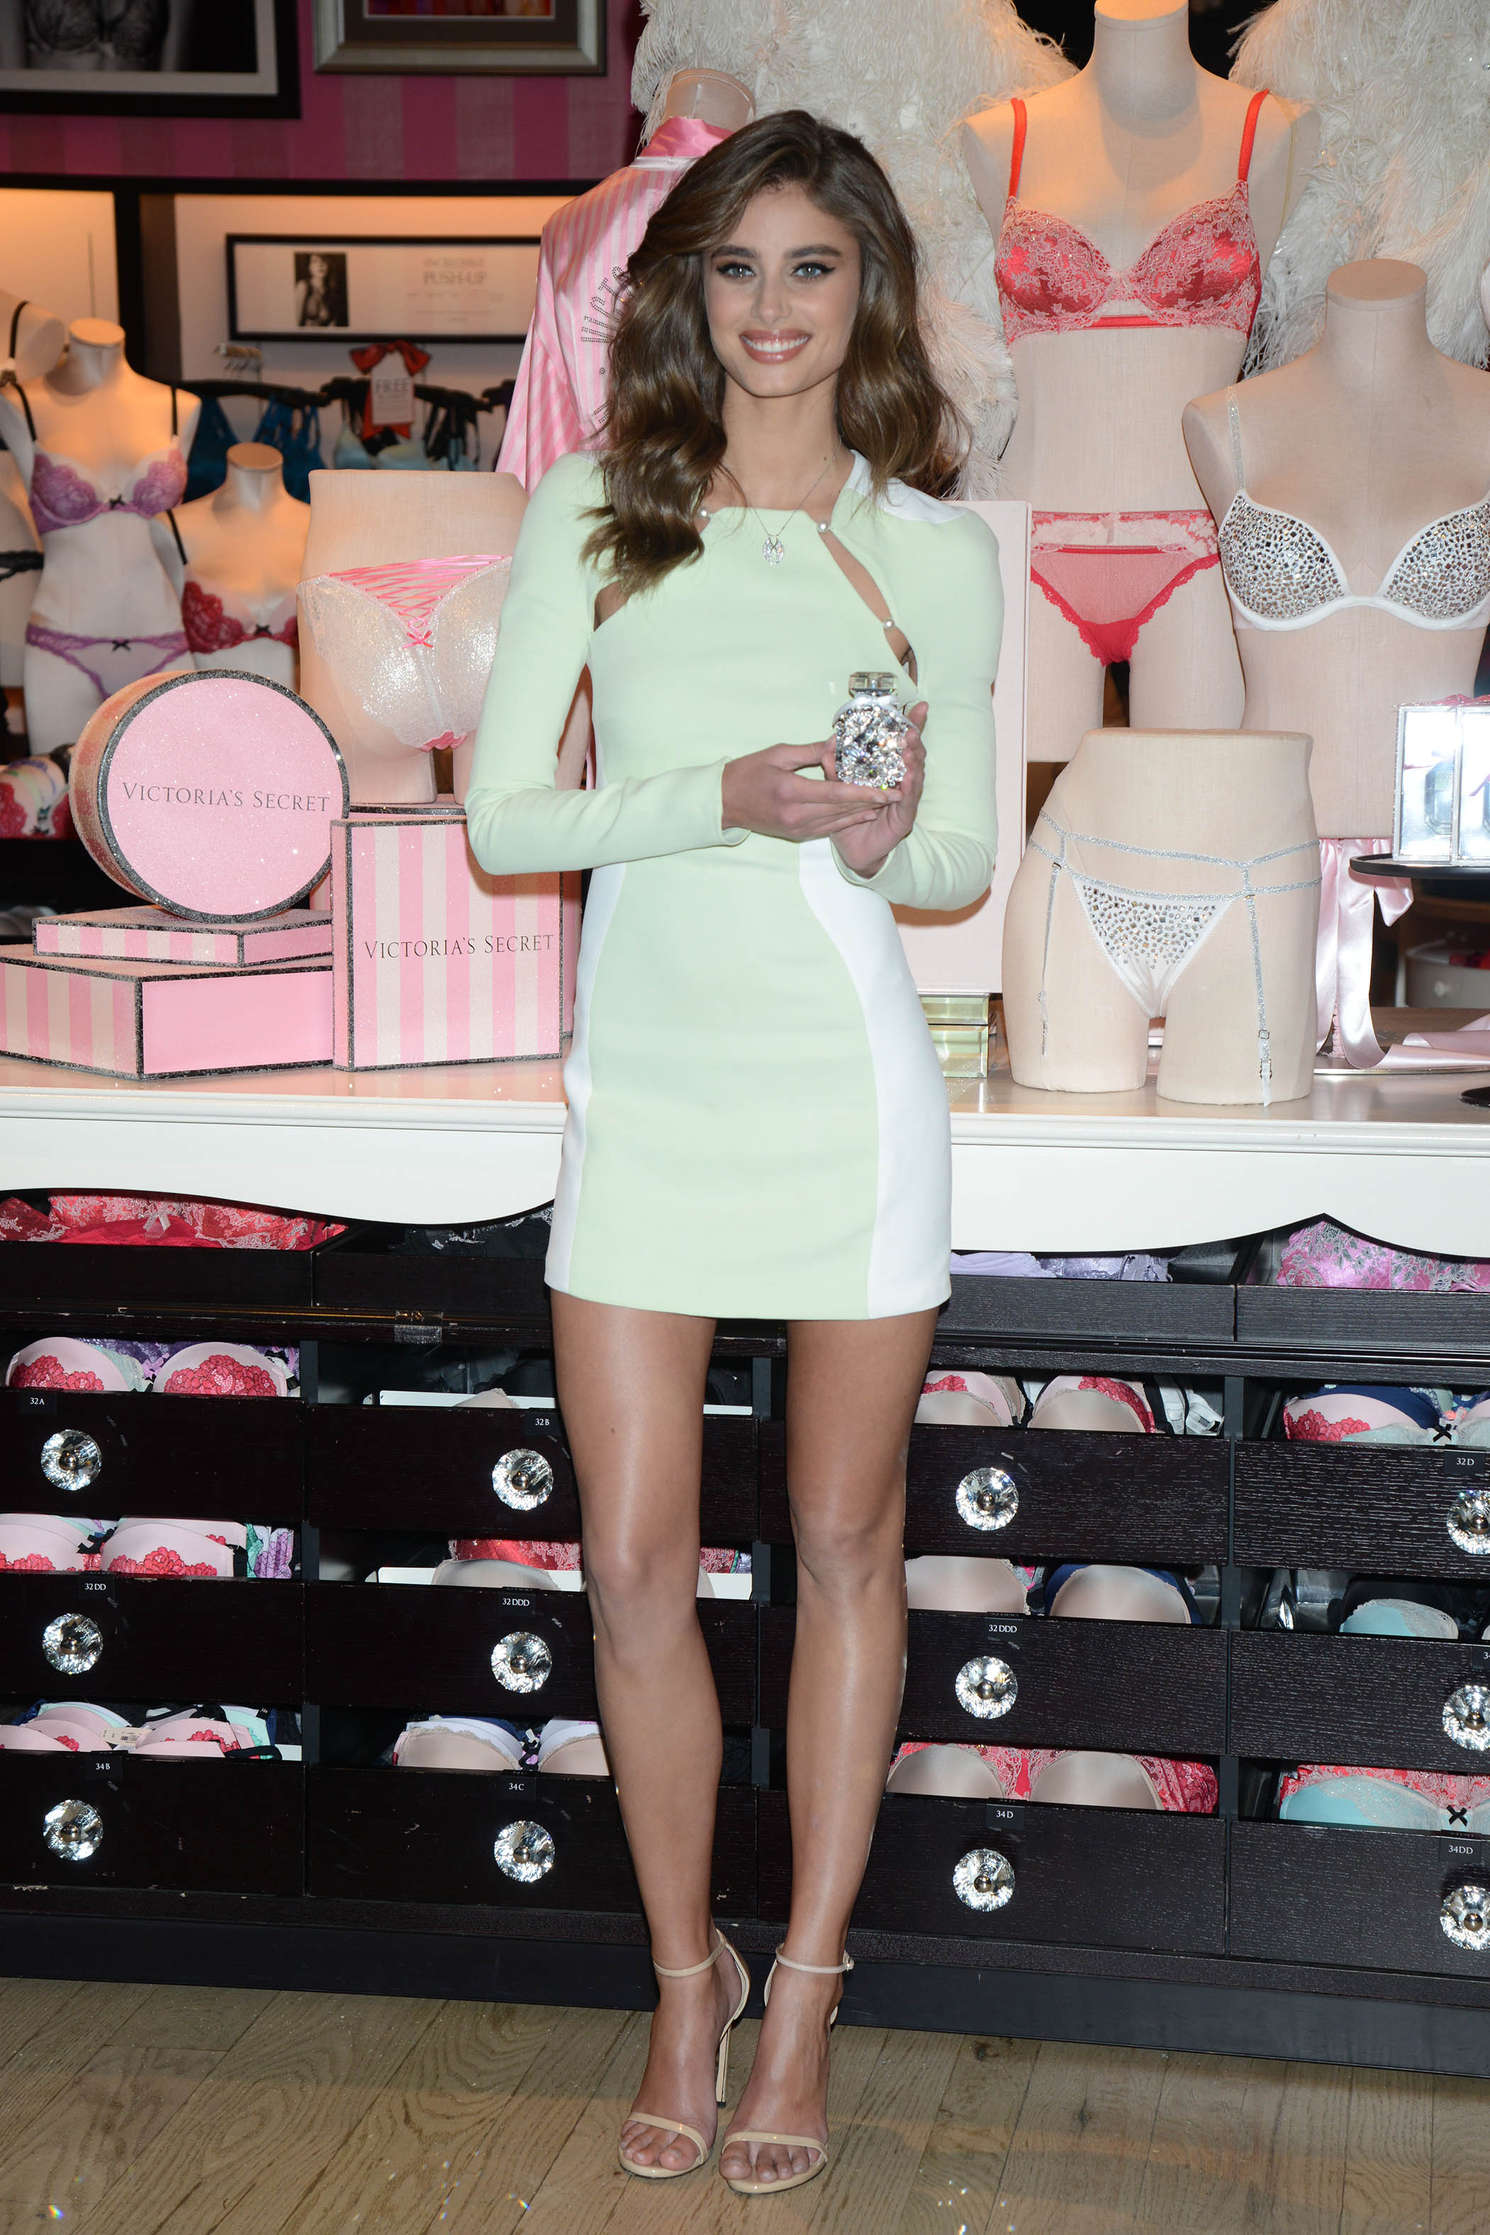 Taylor Hill 2015 : Taylor Hill: Revealing Runway Looks at Victorias Secret -06